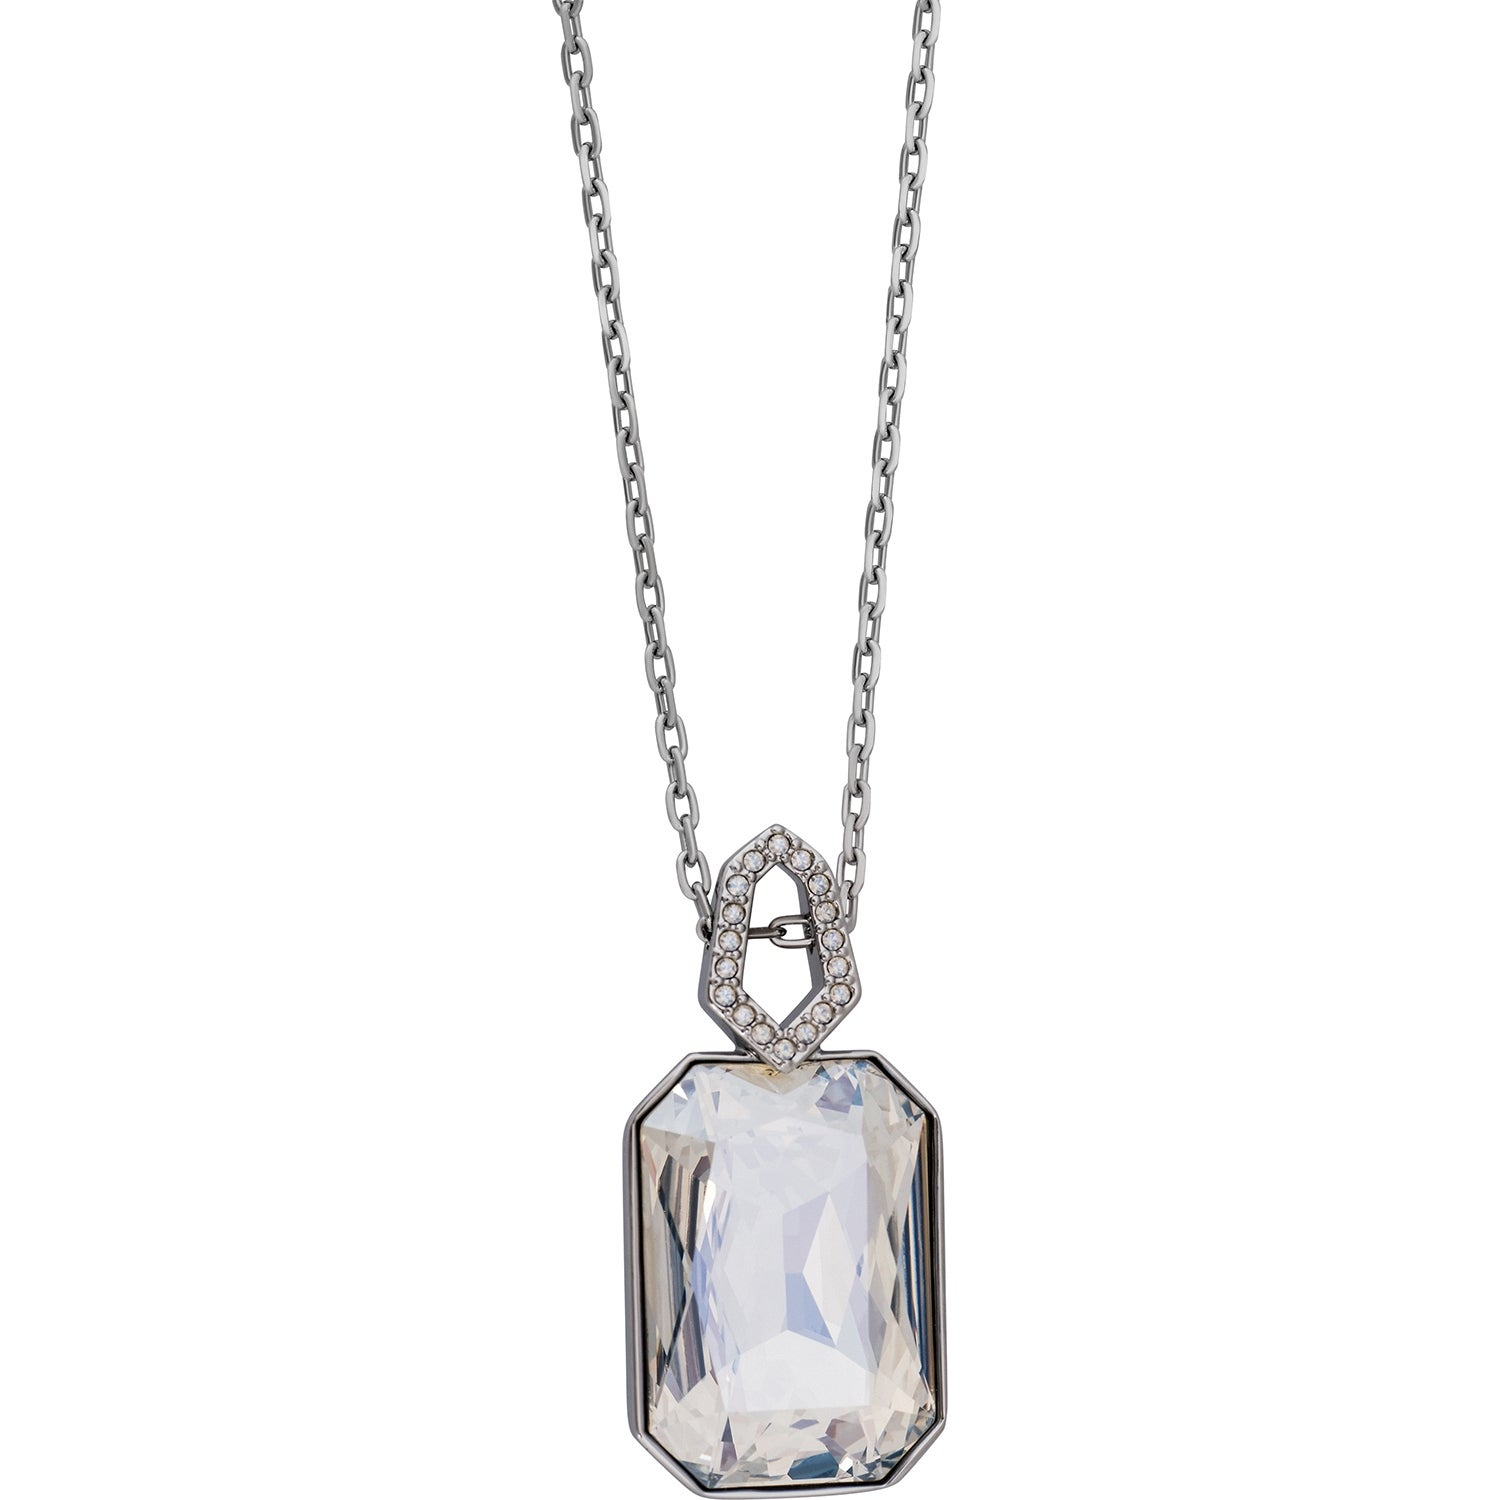 Shop Swarovski Elements Evanescent 5069284 Ruthenium Plated Crystal Within Current Pavé Locket Element Necklaces (Gallery 17 of 25)